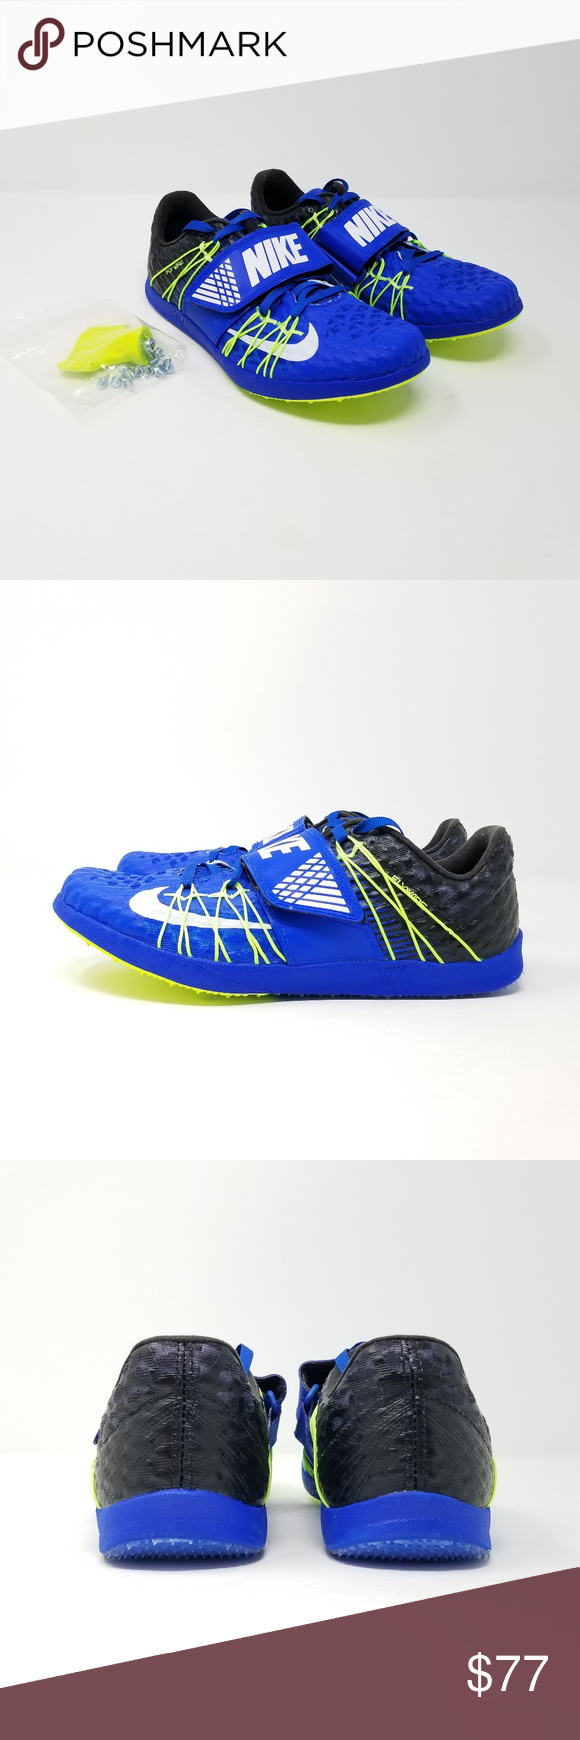 330927ed692b Nike Men s Zoom TJ Triple Jump Elite Track Spikes Nike Men s Zoom TJ Triple  Jump Elite Track Spikes Style Number  705394-413 Color  Blue Volt Tool and  ...